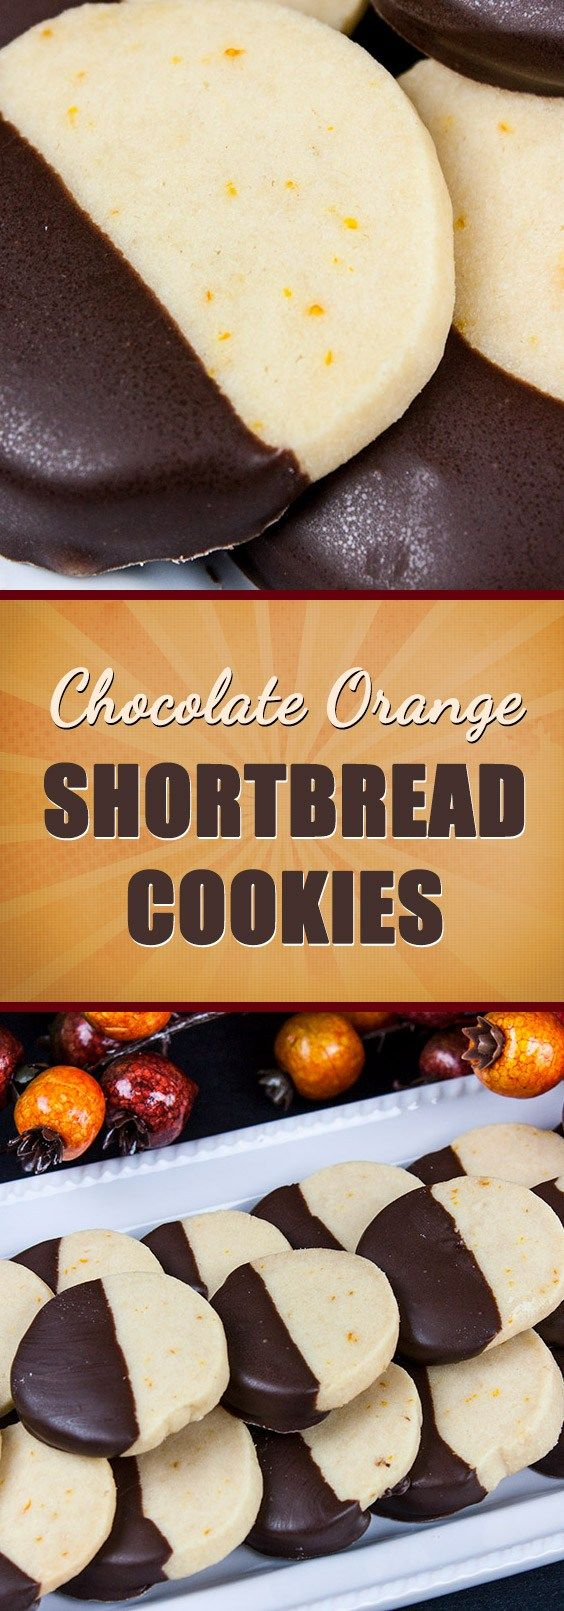 Chocolate Orange Shortbread Cookies - Melts in your mouth with their classic holiday flavor. Tender, buttery, orange flavored shortbread dipped in creamy, decadent dark chocolate.